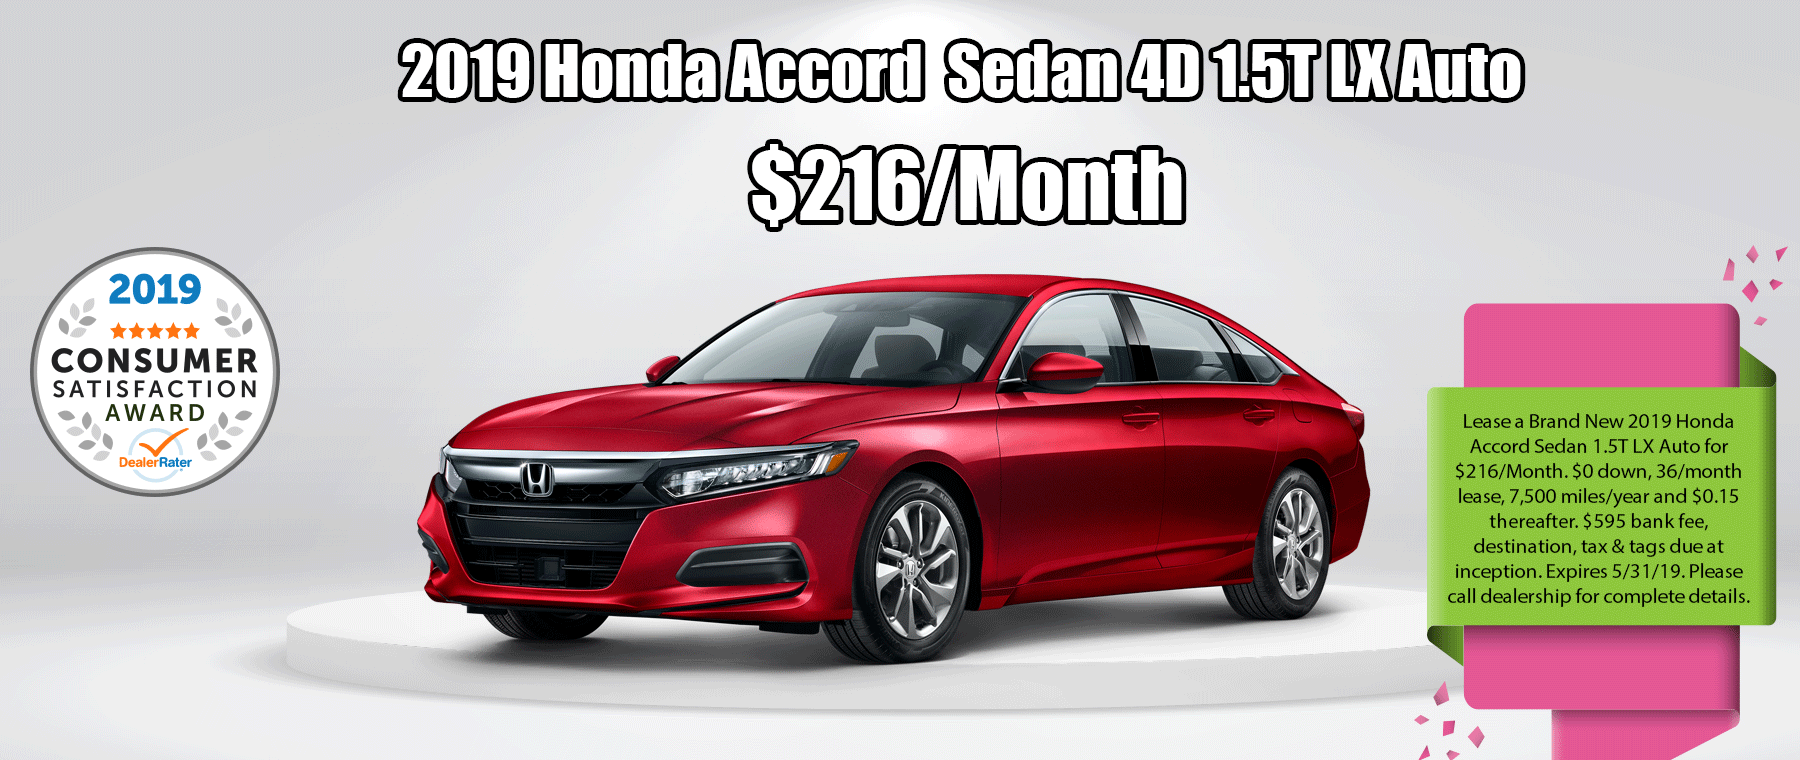 2019-Accord-LX-Auto-Lease